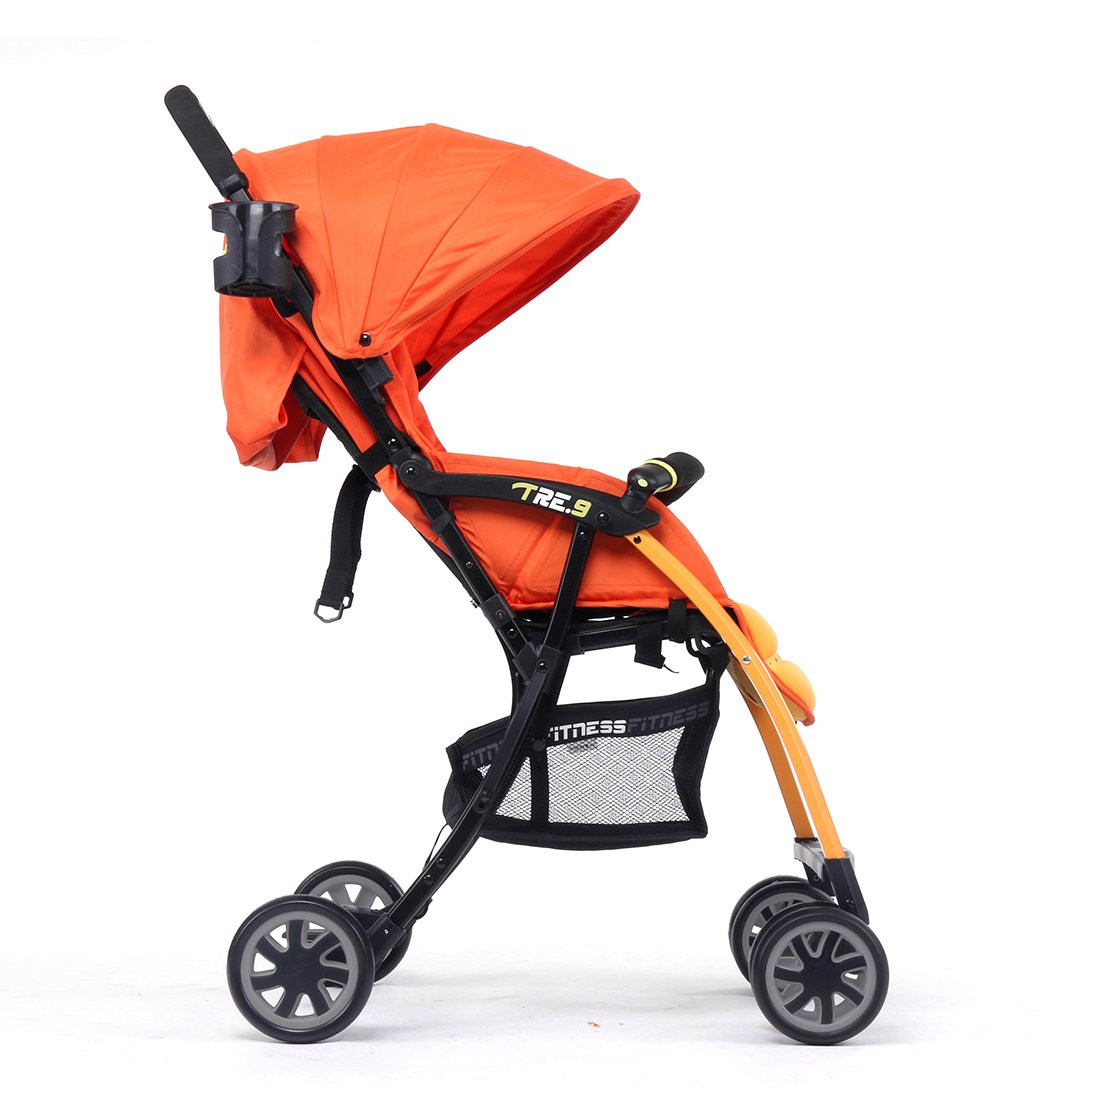 Pali Ultra Lightweight Tre.9 Stroller Fitness Fashion in Sao Paolo Orange - Only 11 lbs.